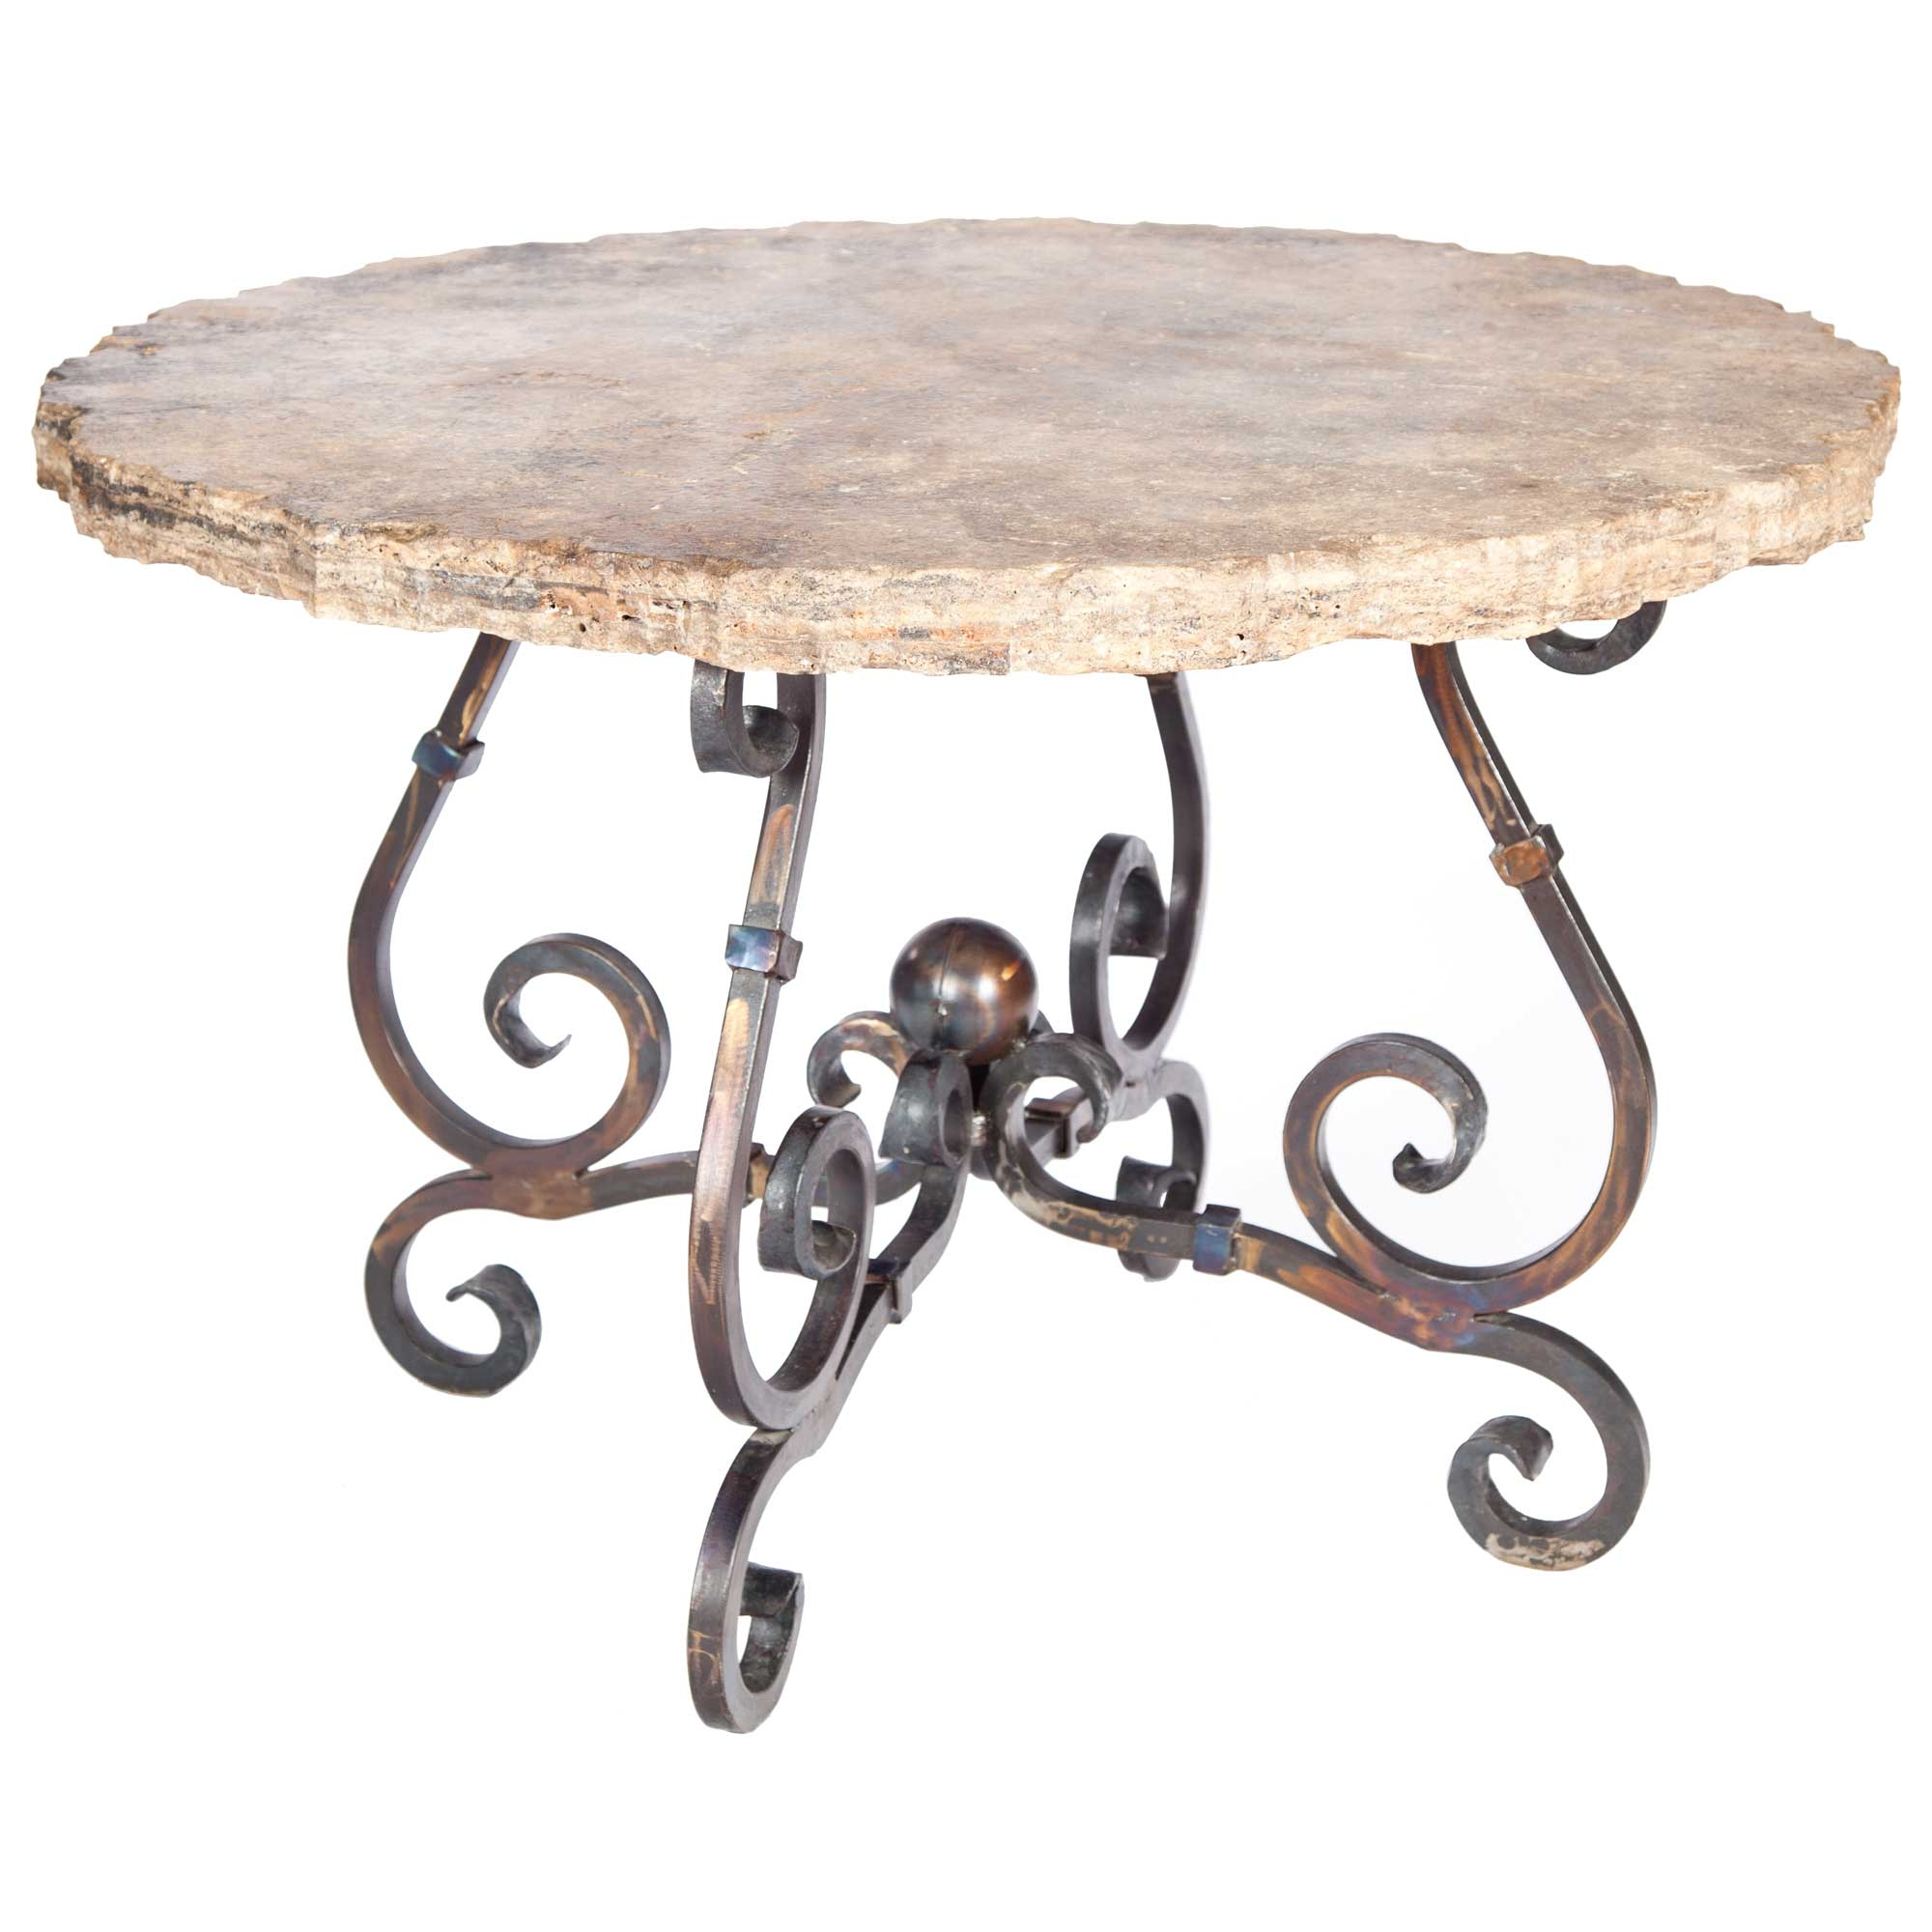 Pictured Here Is The French Dining Table With Wrought Iron